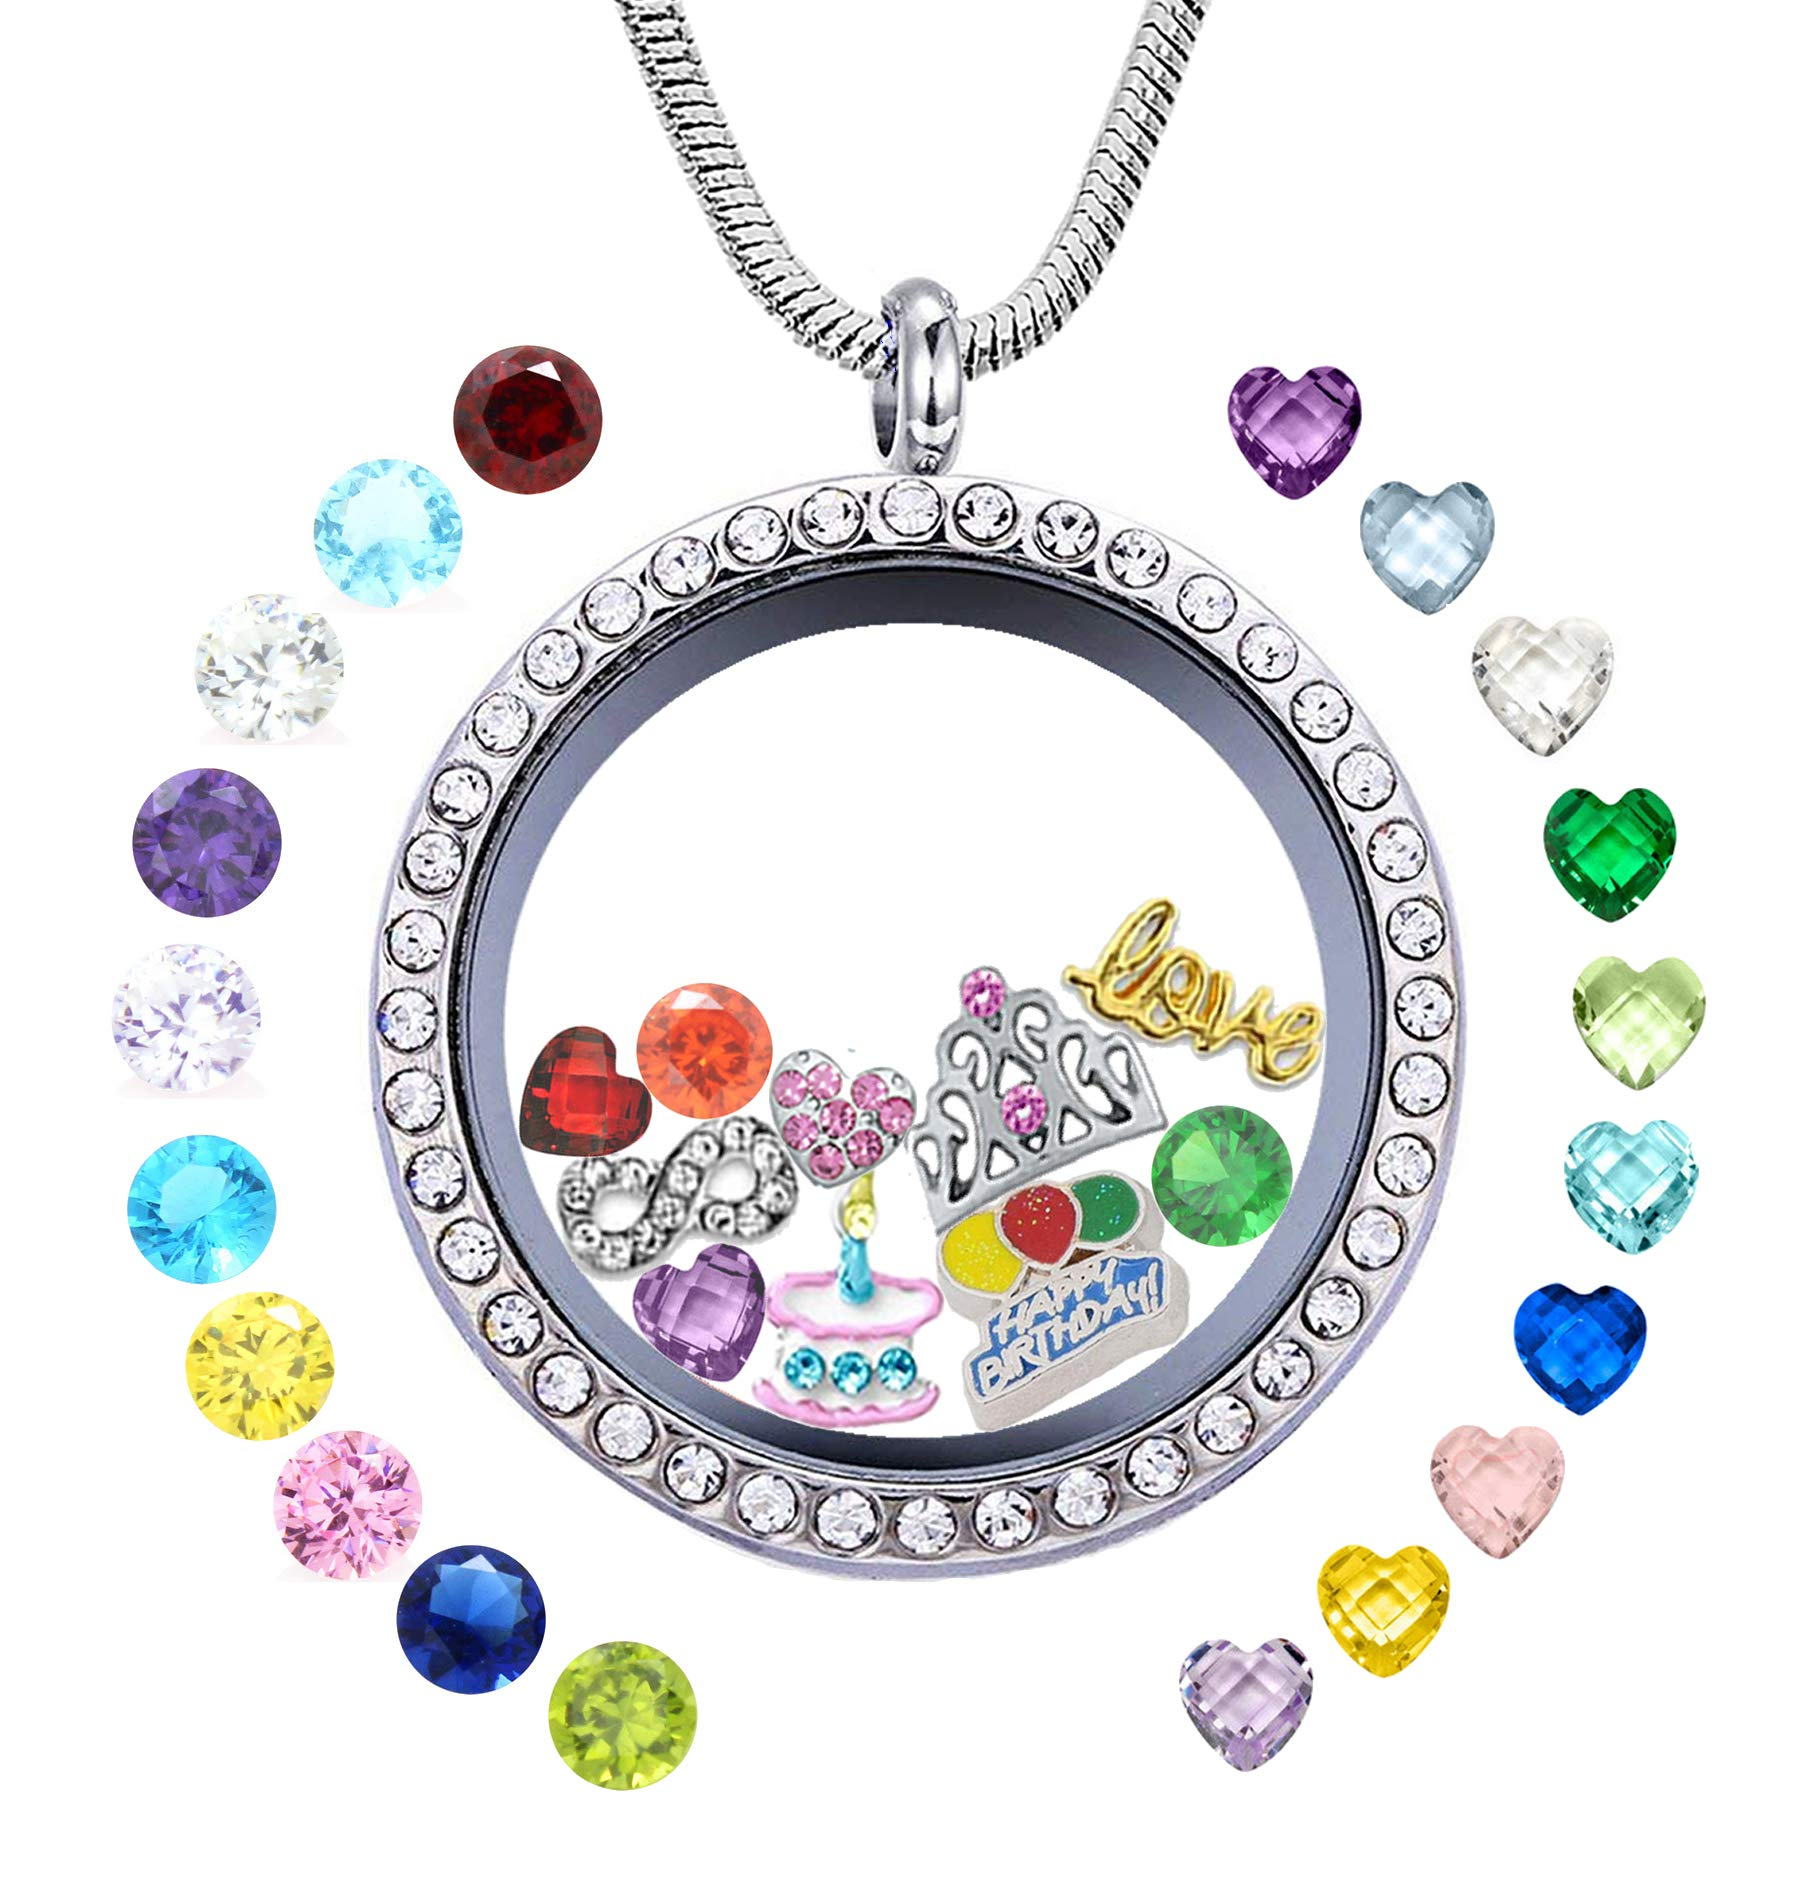 Over 260 Crystals For Repair Making Jewelry Or Origami Owl Type Multi Color Charms & Charm Bracelets Jewelry & Watches